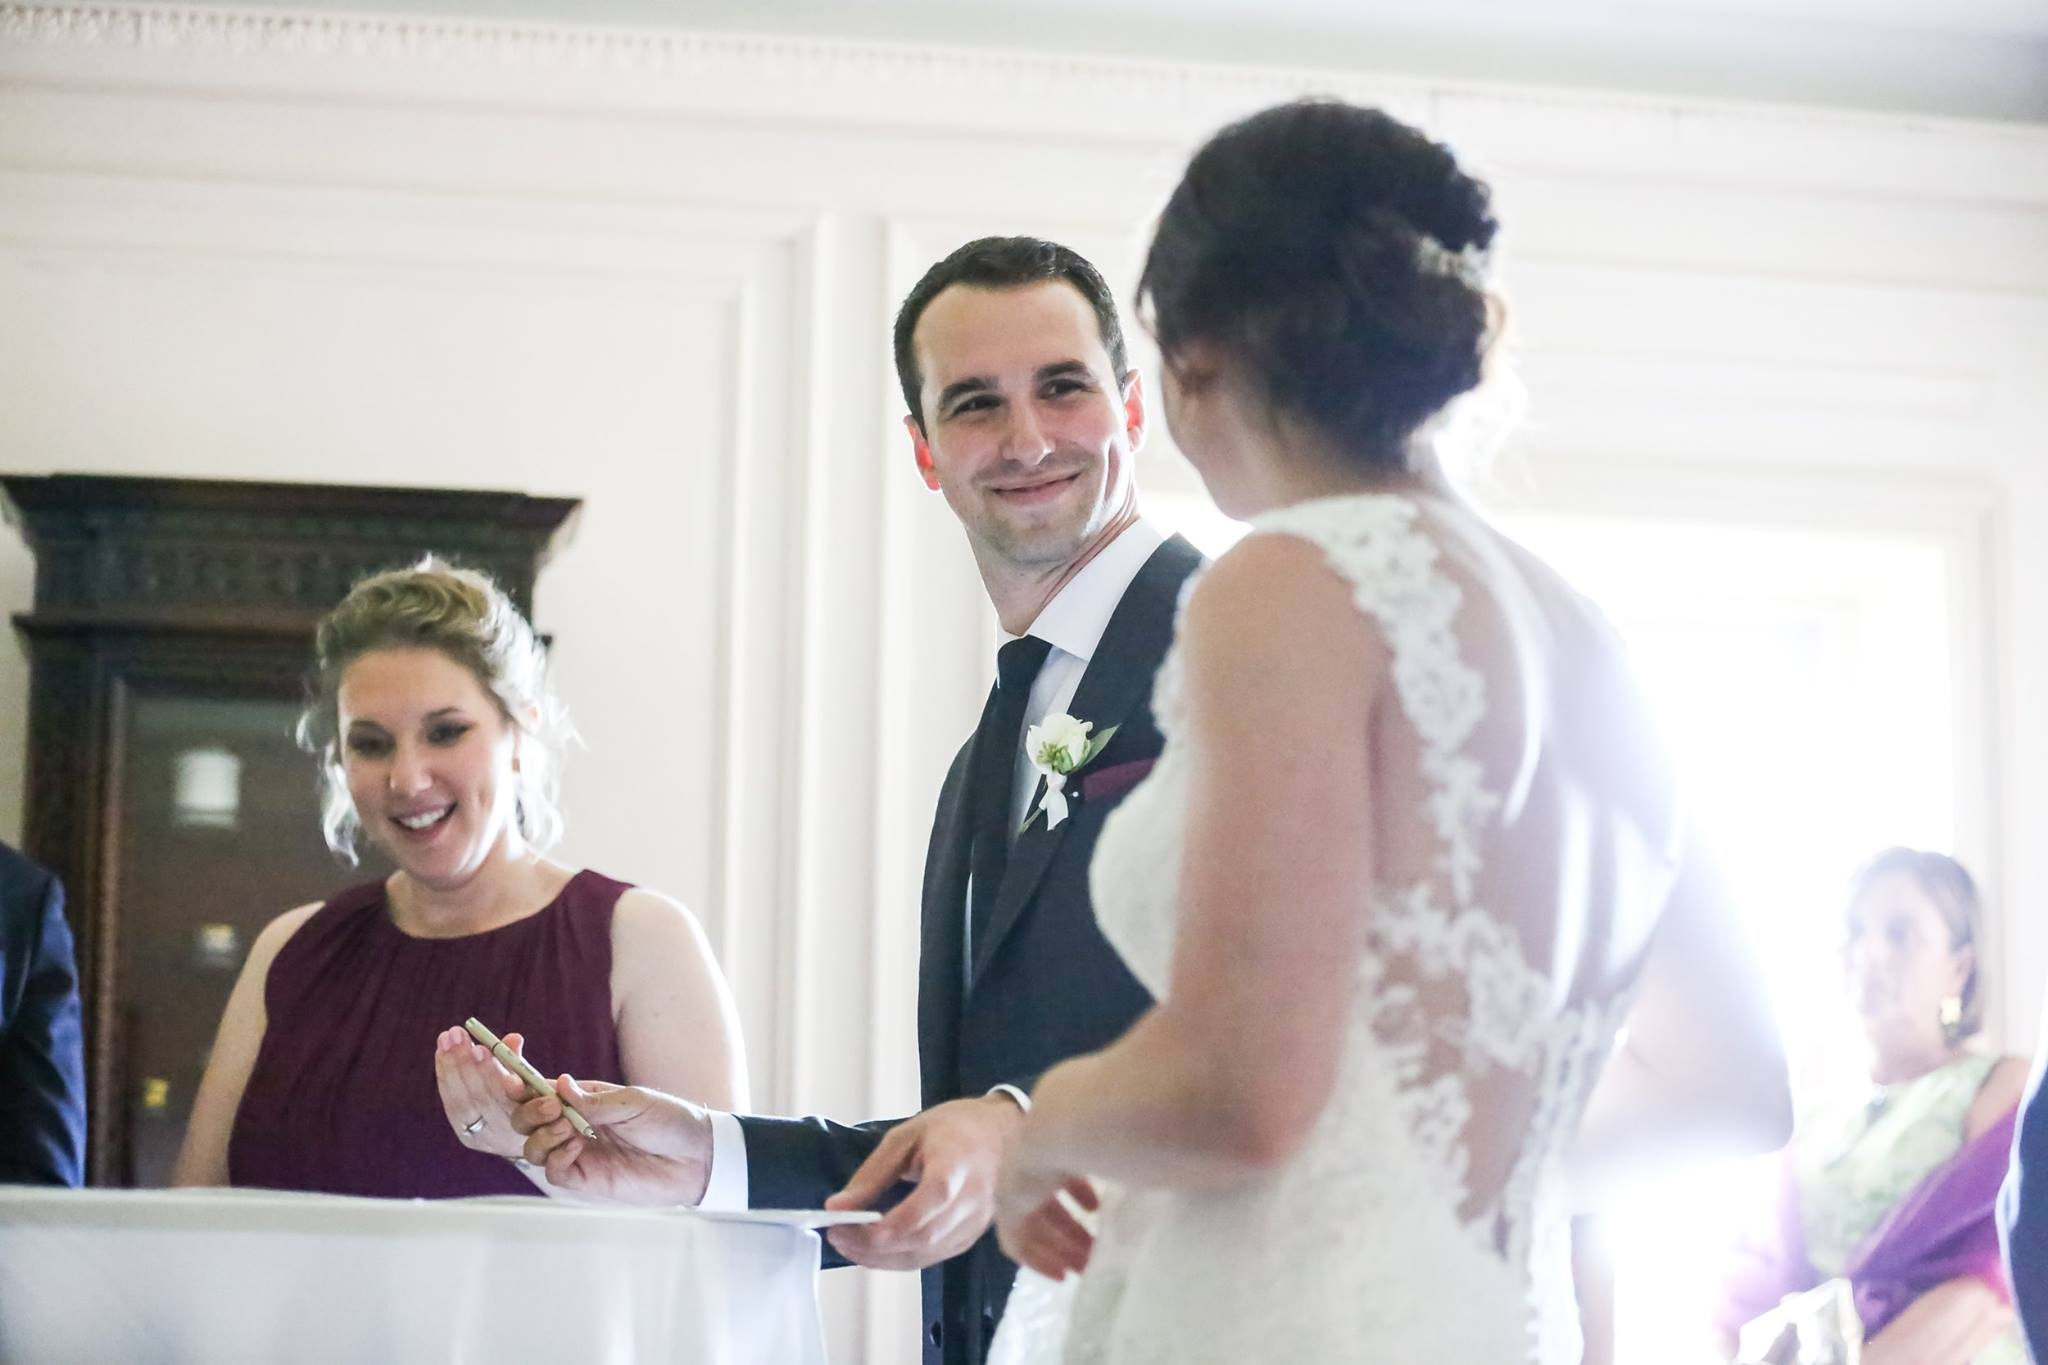 Carly and Michael's ketubah signing ceremony with family and friends in cincinnati, ohio. Photos by Laura Leppert Photography, 2016.